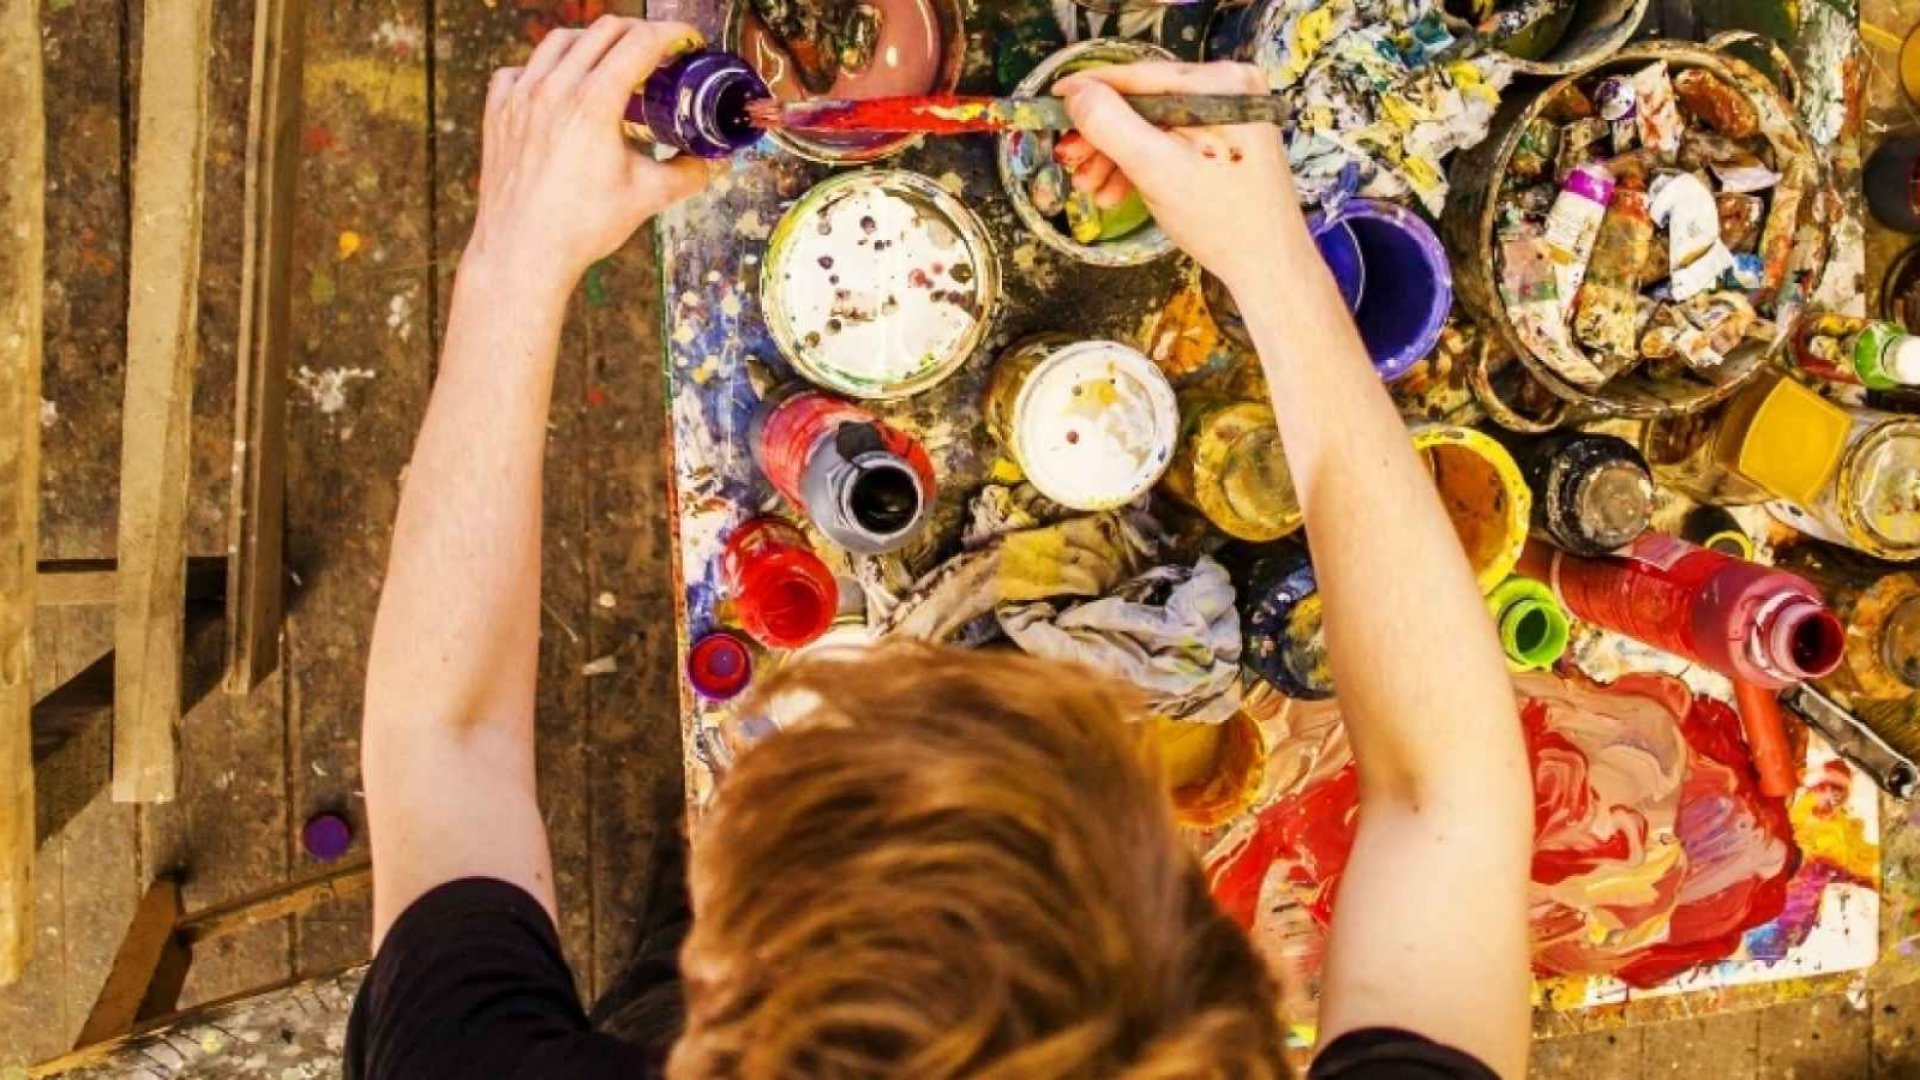 Science: Making Art Reduces Stress (Even If You're Terrible at It)